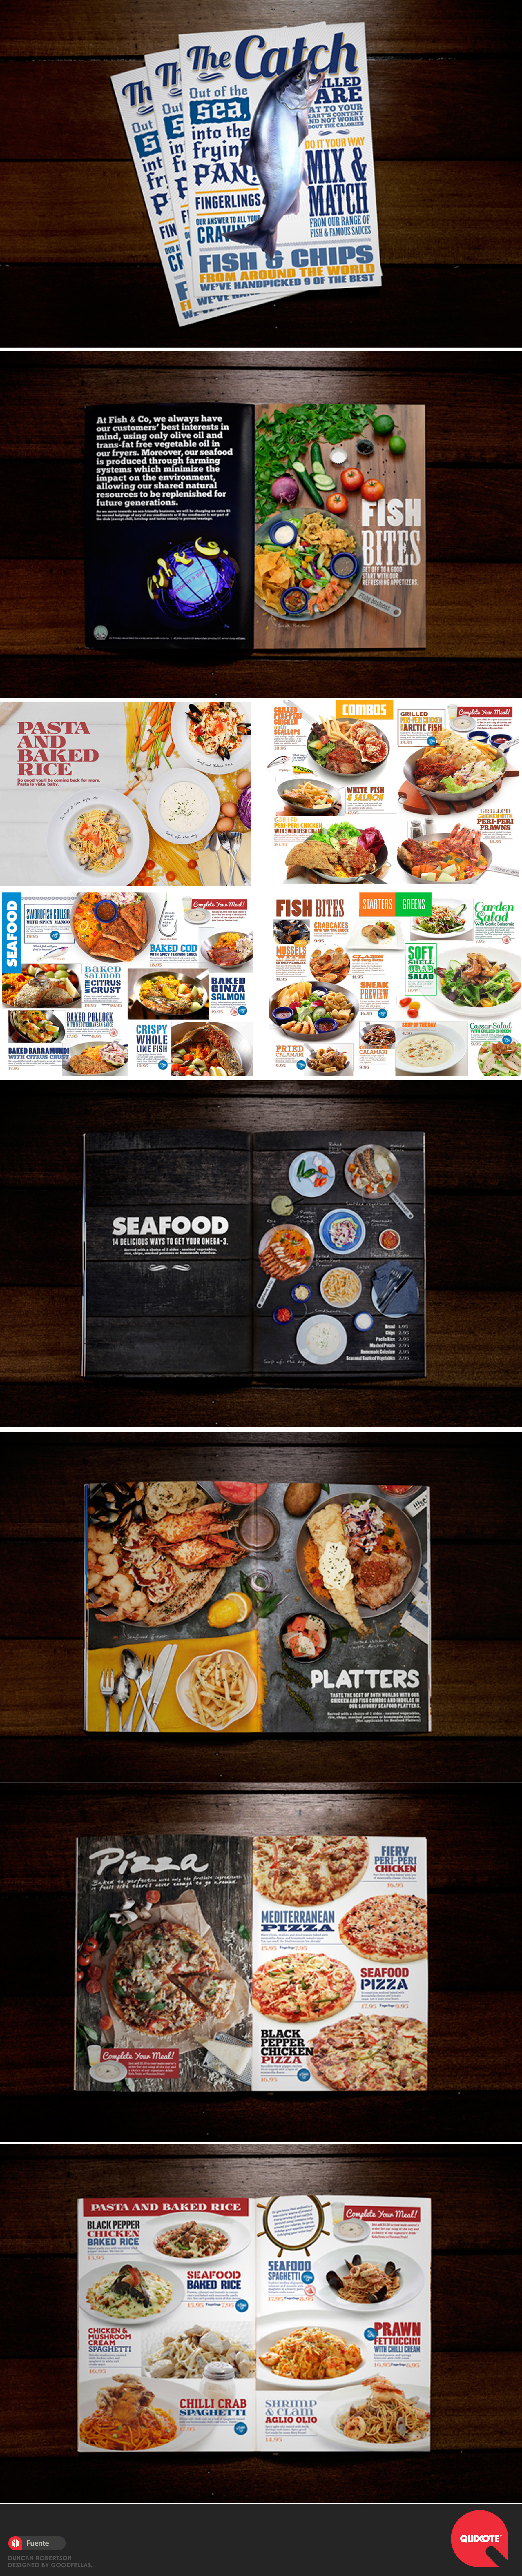 Great and fun Menu Design. This menu showcases the restaurant's food through tantalizing photos and merry typography. Fish & Co. is located in Singapore.  Design by Goodfellas